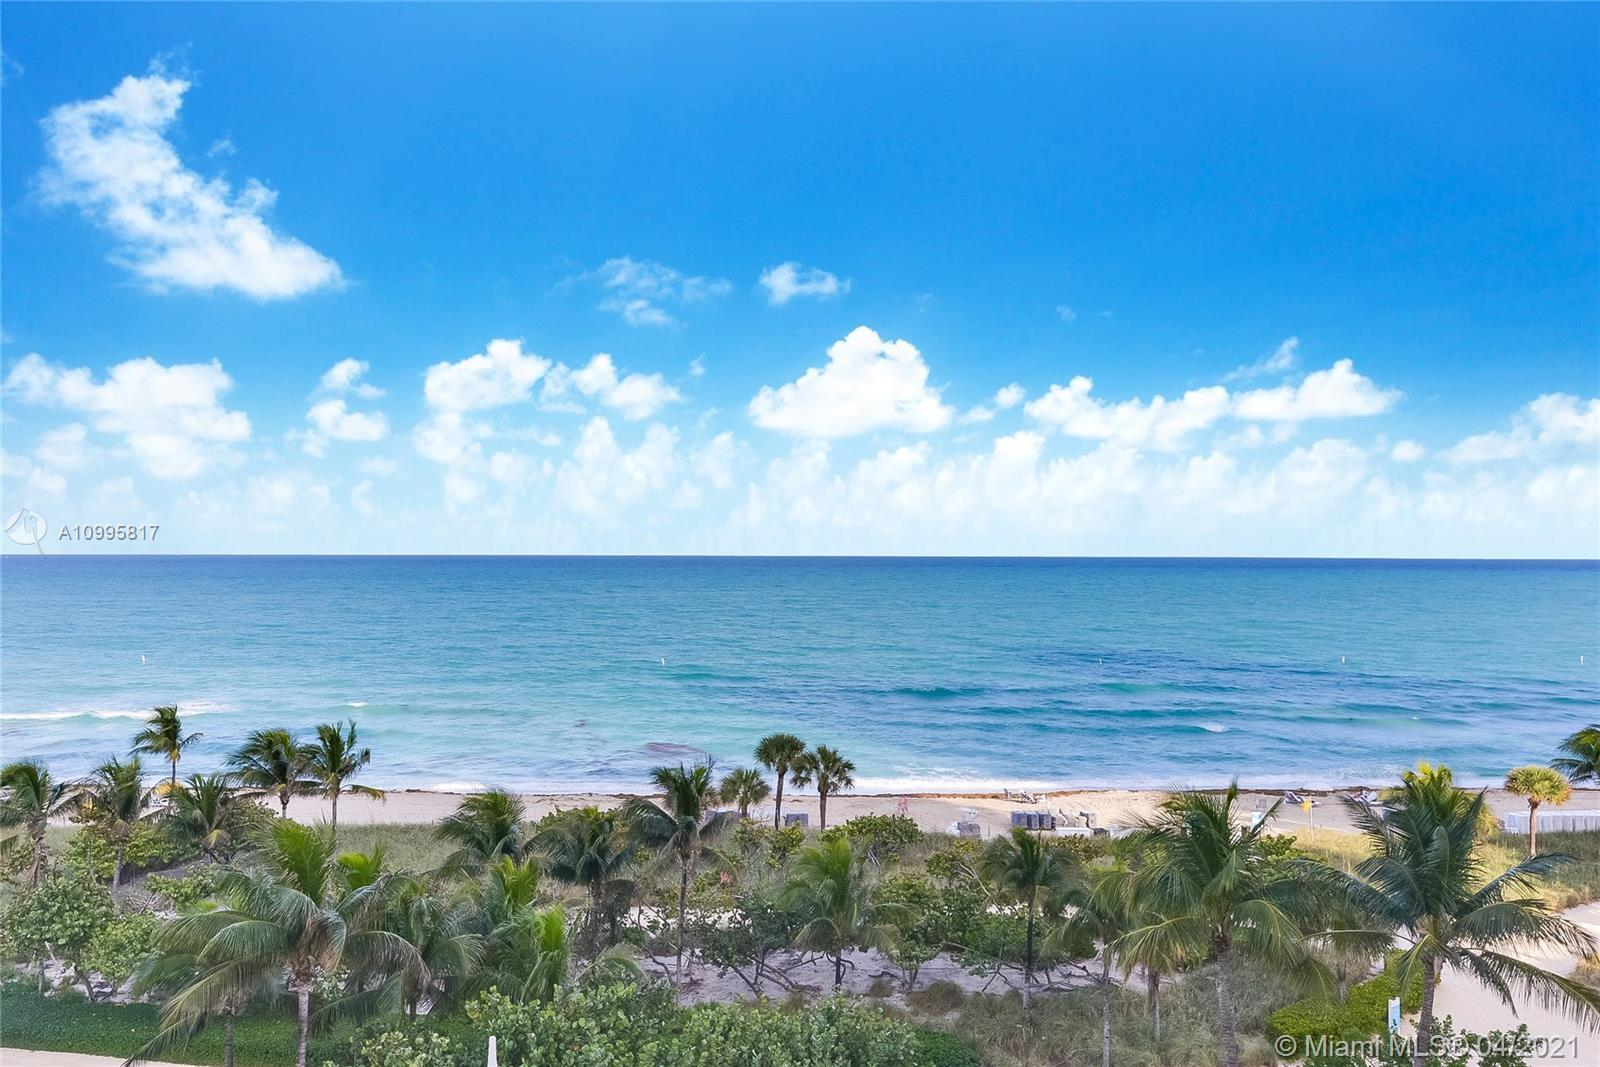 At Bal Harbour Florida Balmoral Condo located on 9801 Collins Ave unit 5H, across the street from th